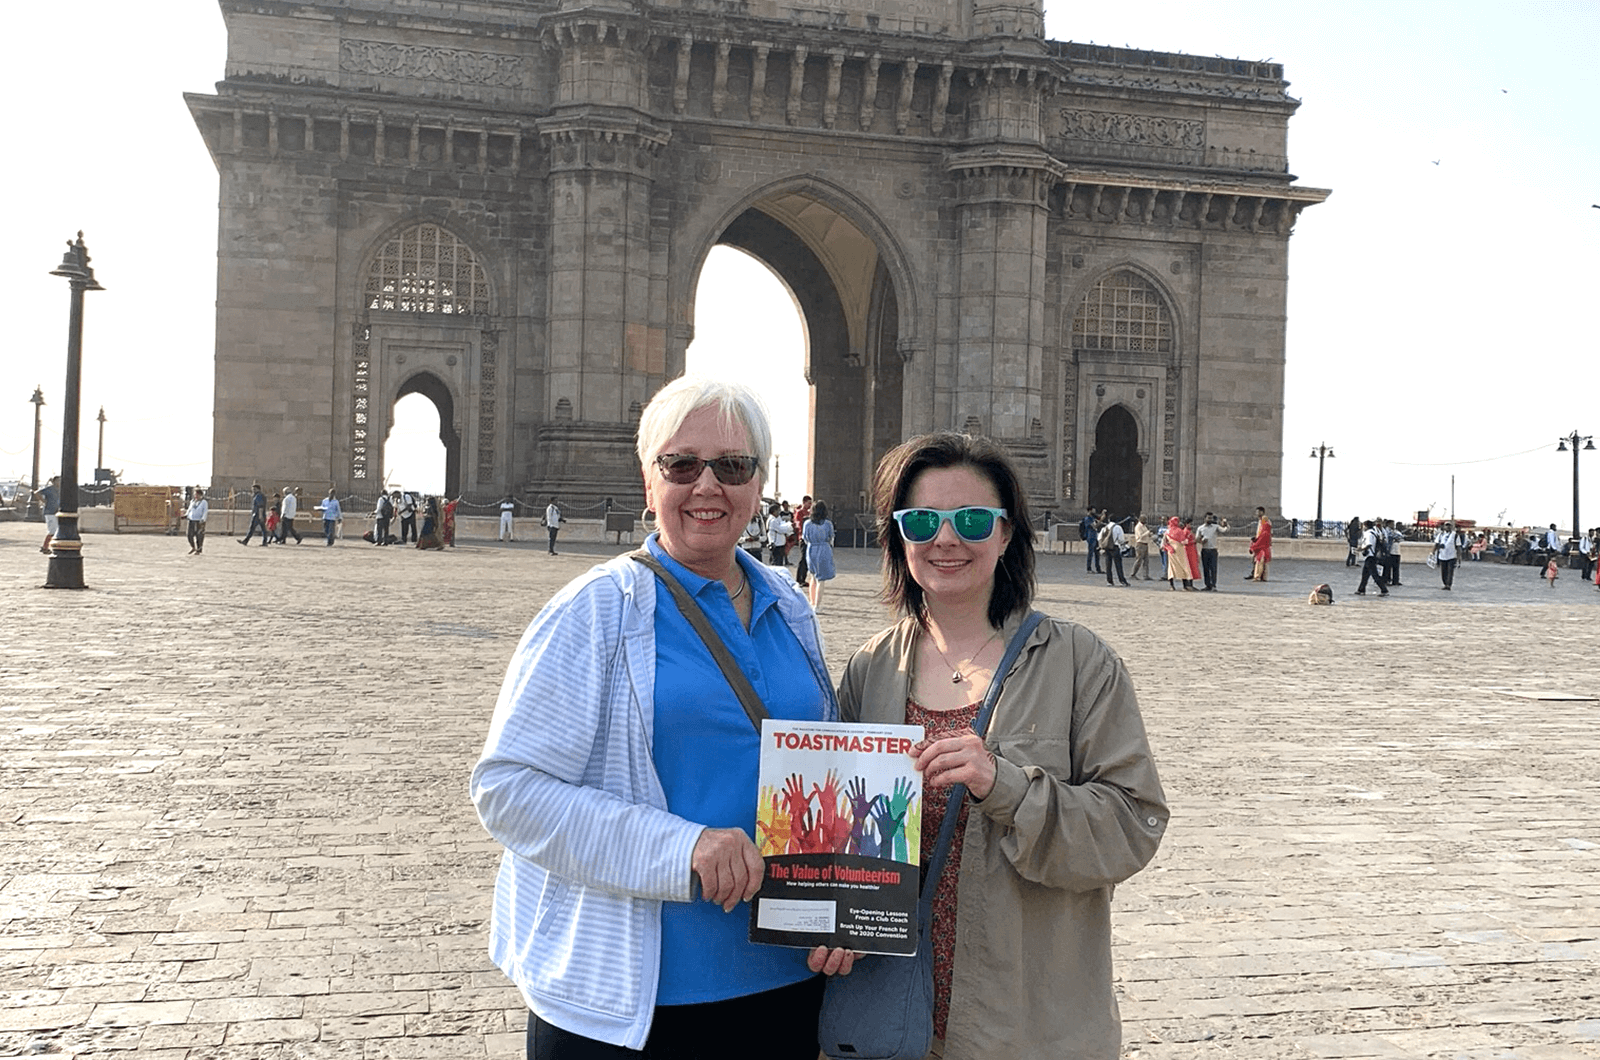 Jen Czapla, (pictured right) with her aunt, Gail, are members of clubs in different states, but travel the world together with their Toastmaster magazine.